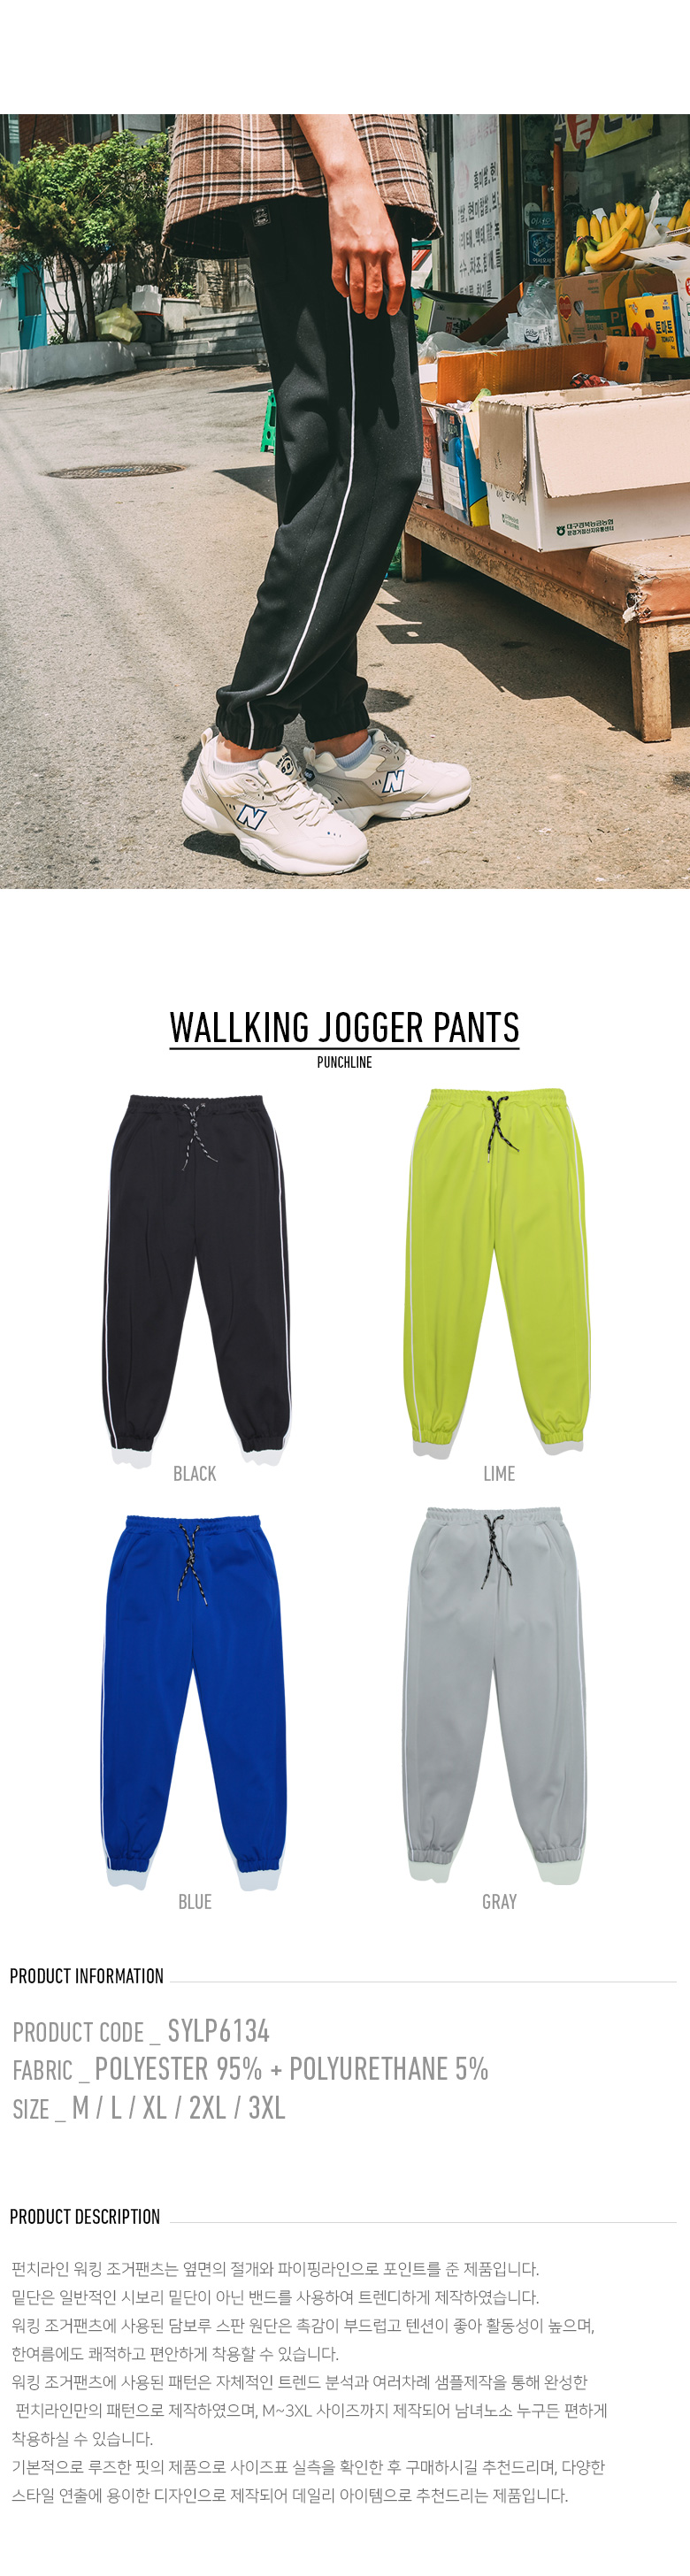 20190422_pl_walkingjogger_model_kang_01.jpg